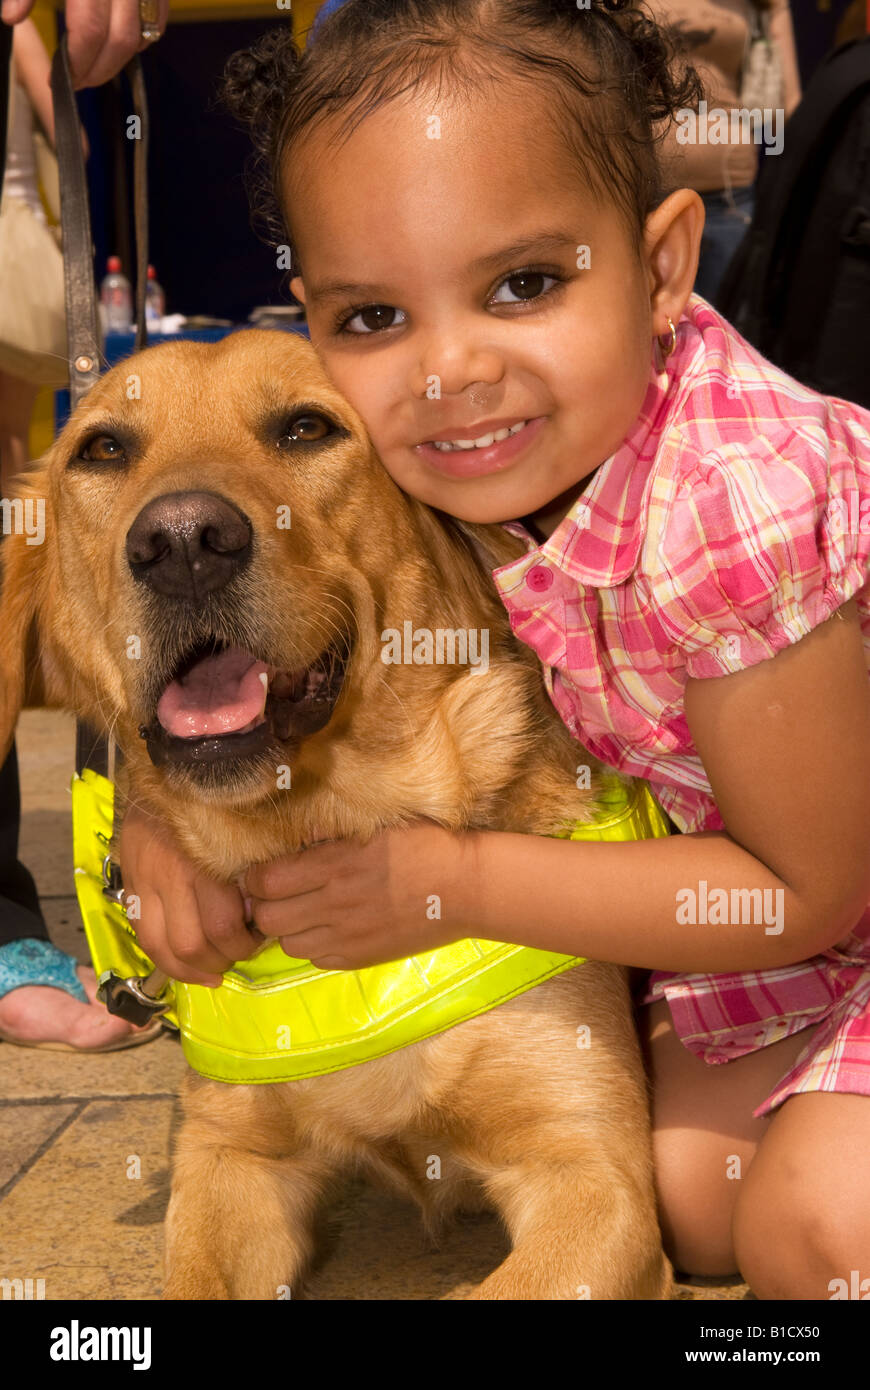 Young black girl cuddling guide dog, Hammersmith, west London, UK. - Stock Image